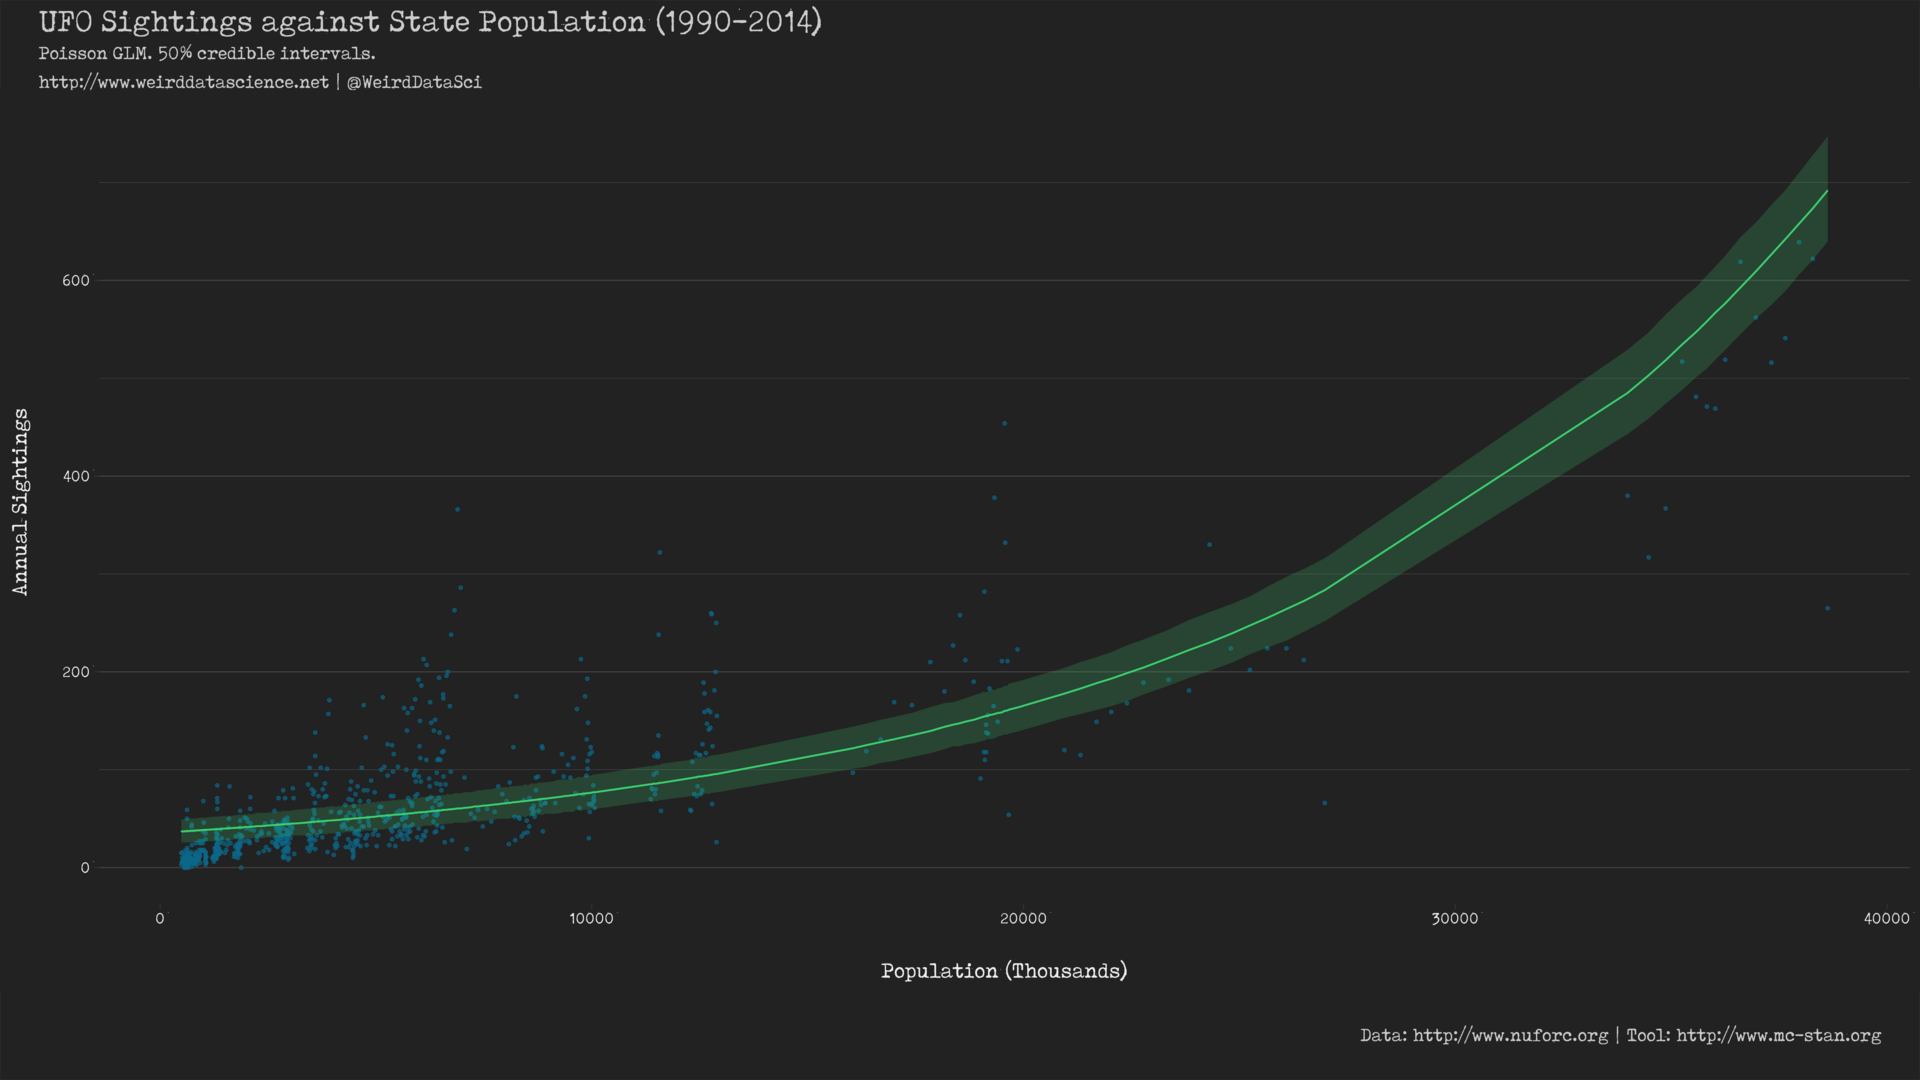 Global poisson GLM of UFO sightings against population.